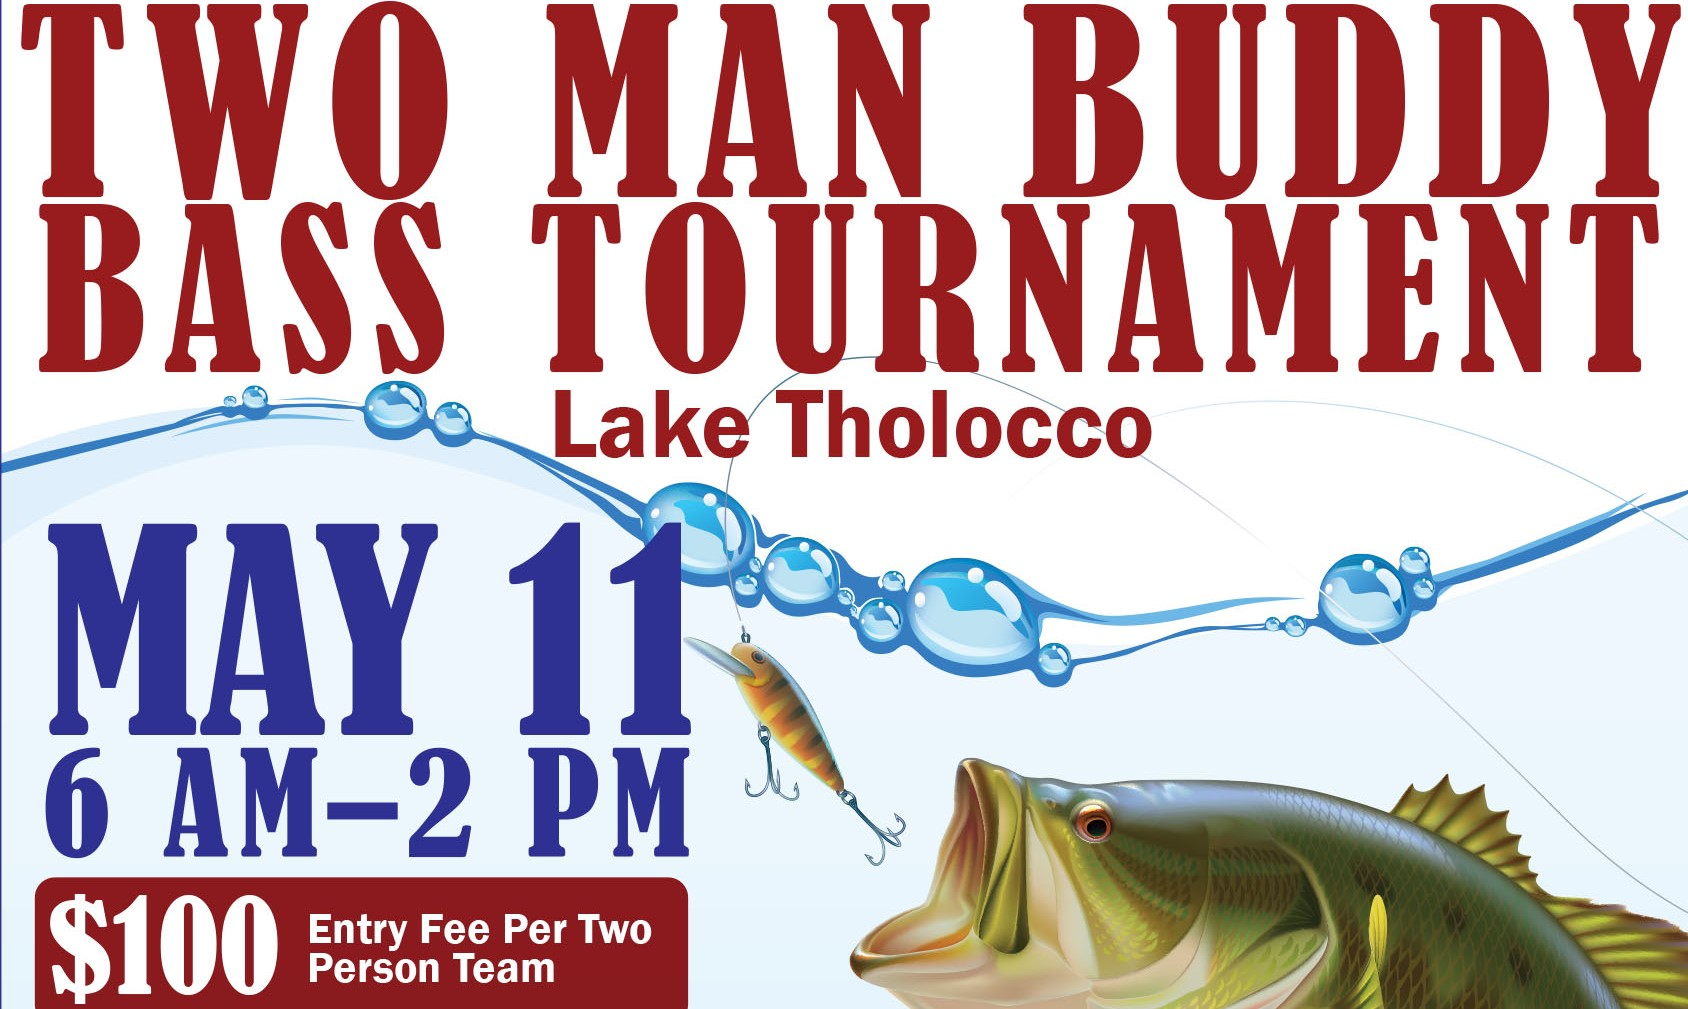 Two Man Buddy Bass Tournament